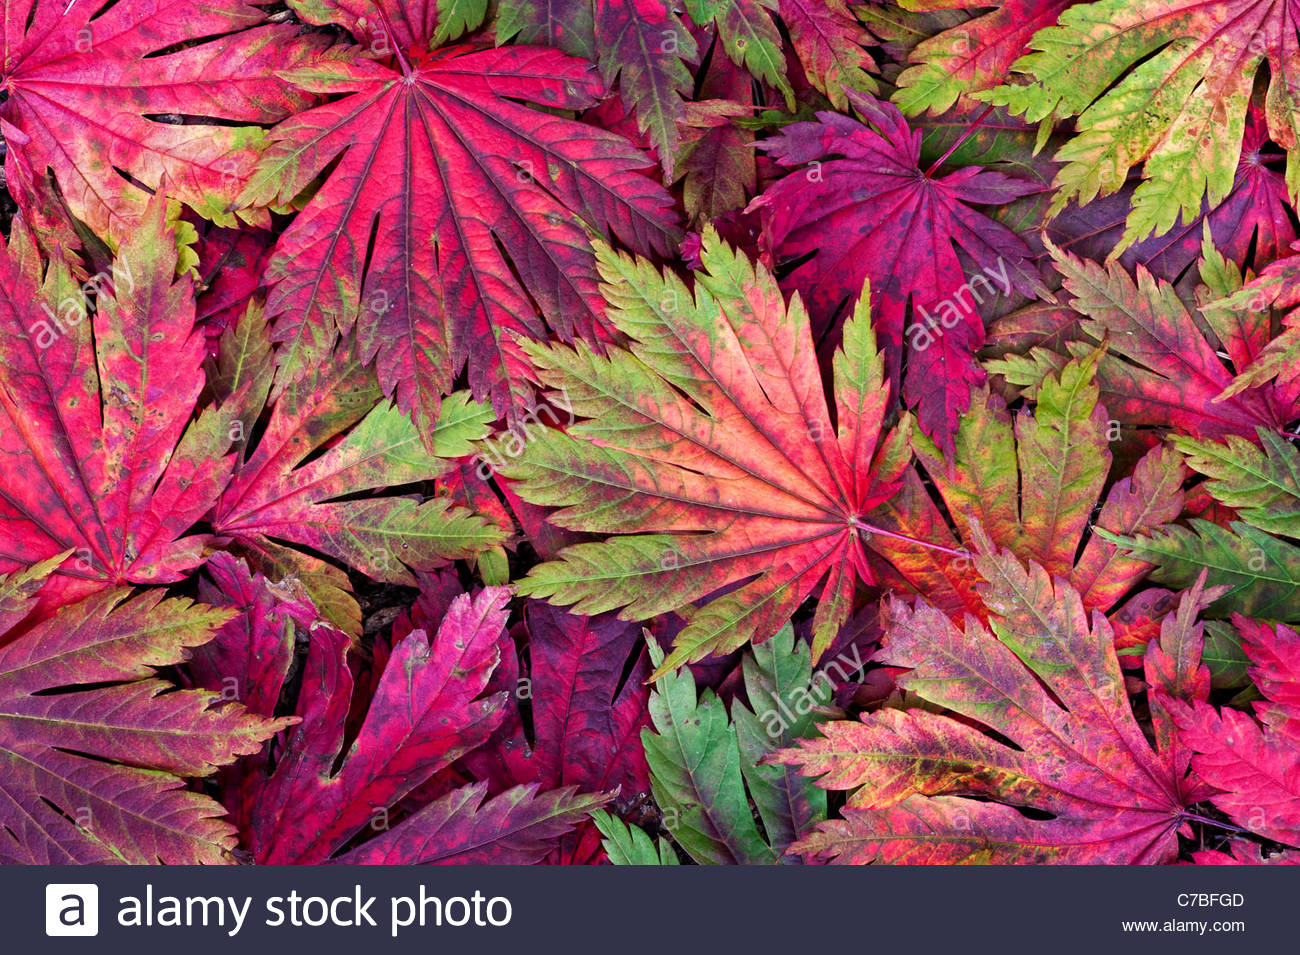 AcerJaponicum Attaryi leaves. Japanese Maple leaves changing colour in autumn. Red Acer leaf pattern - Stock Image